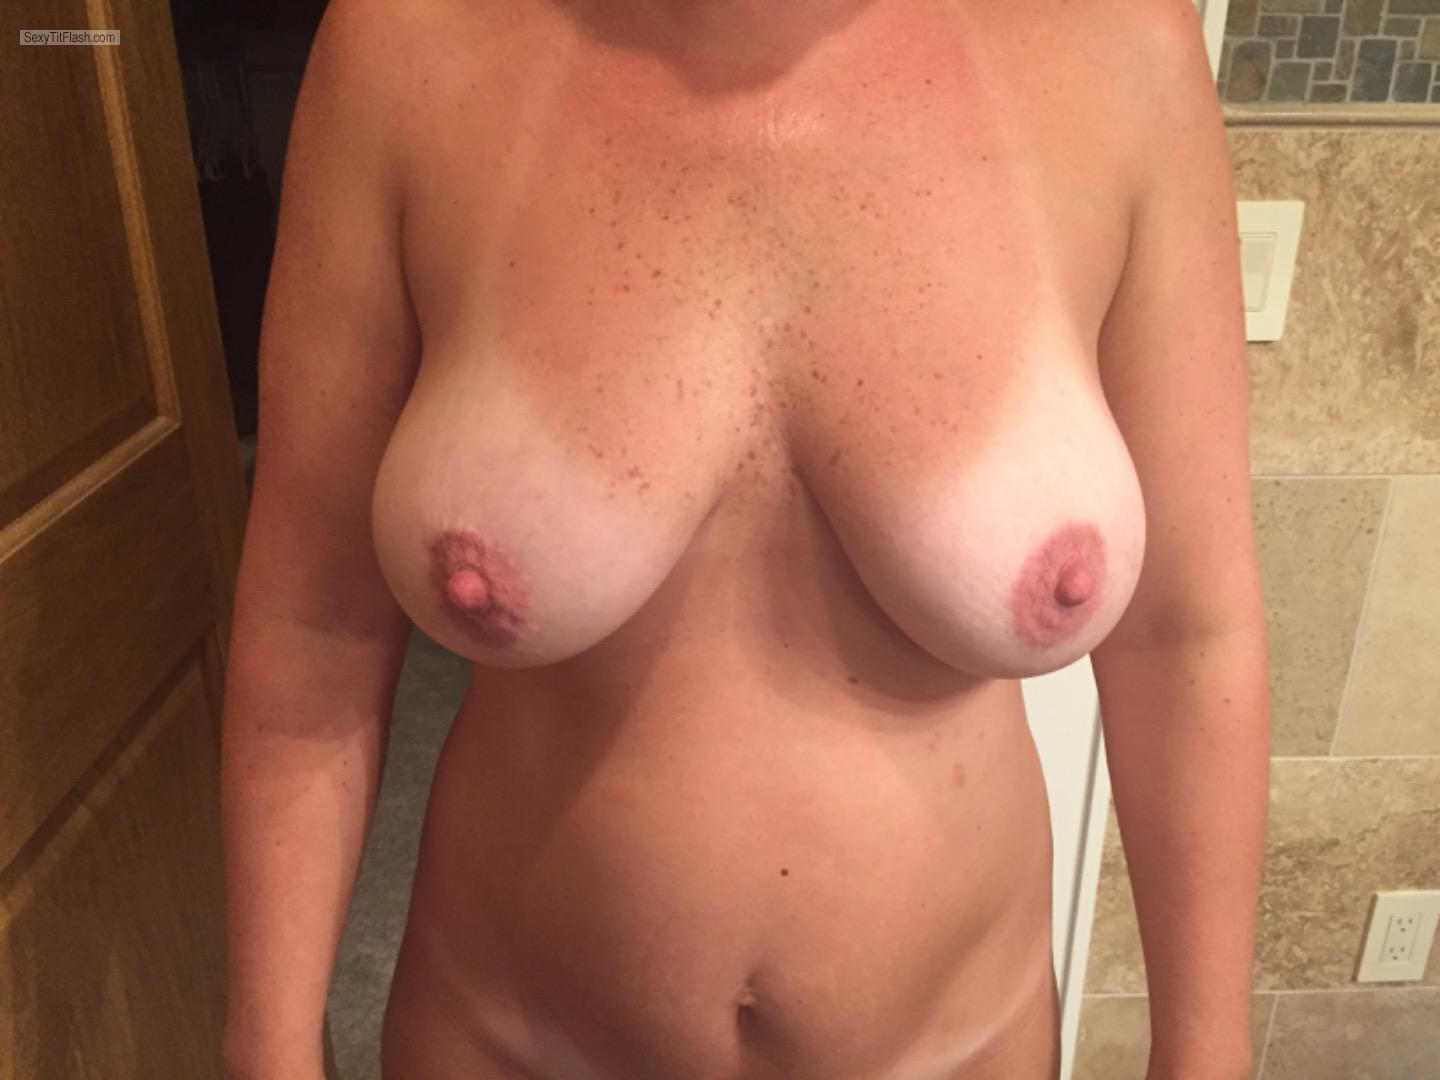 Tit Flash: Wife's Tanlined Medium Tits - Lisas from United States